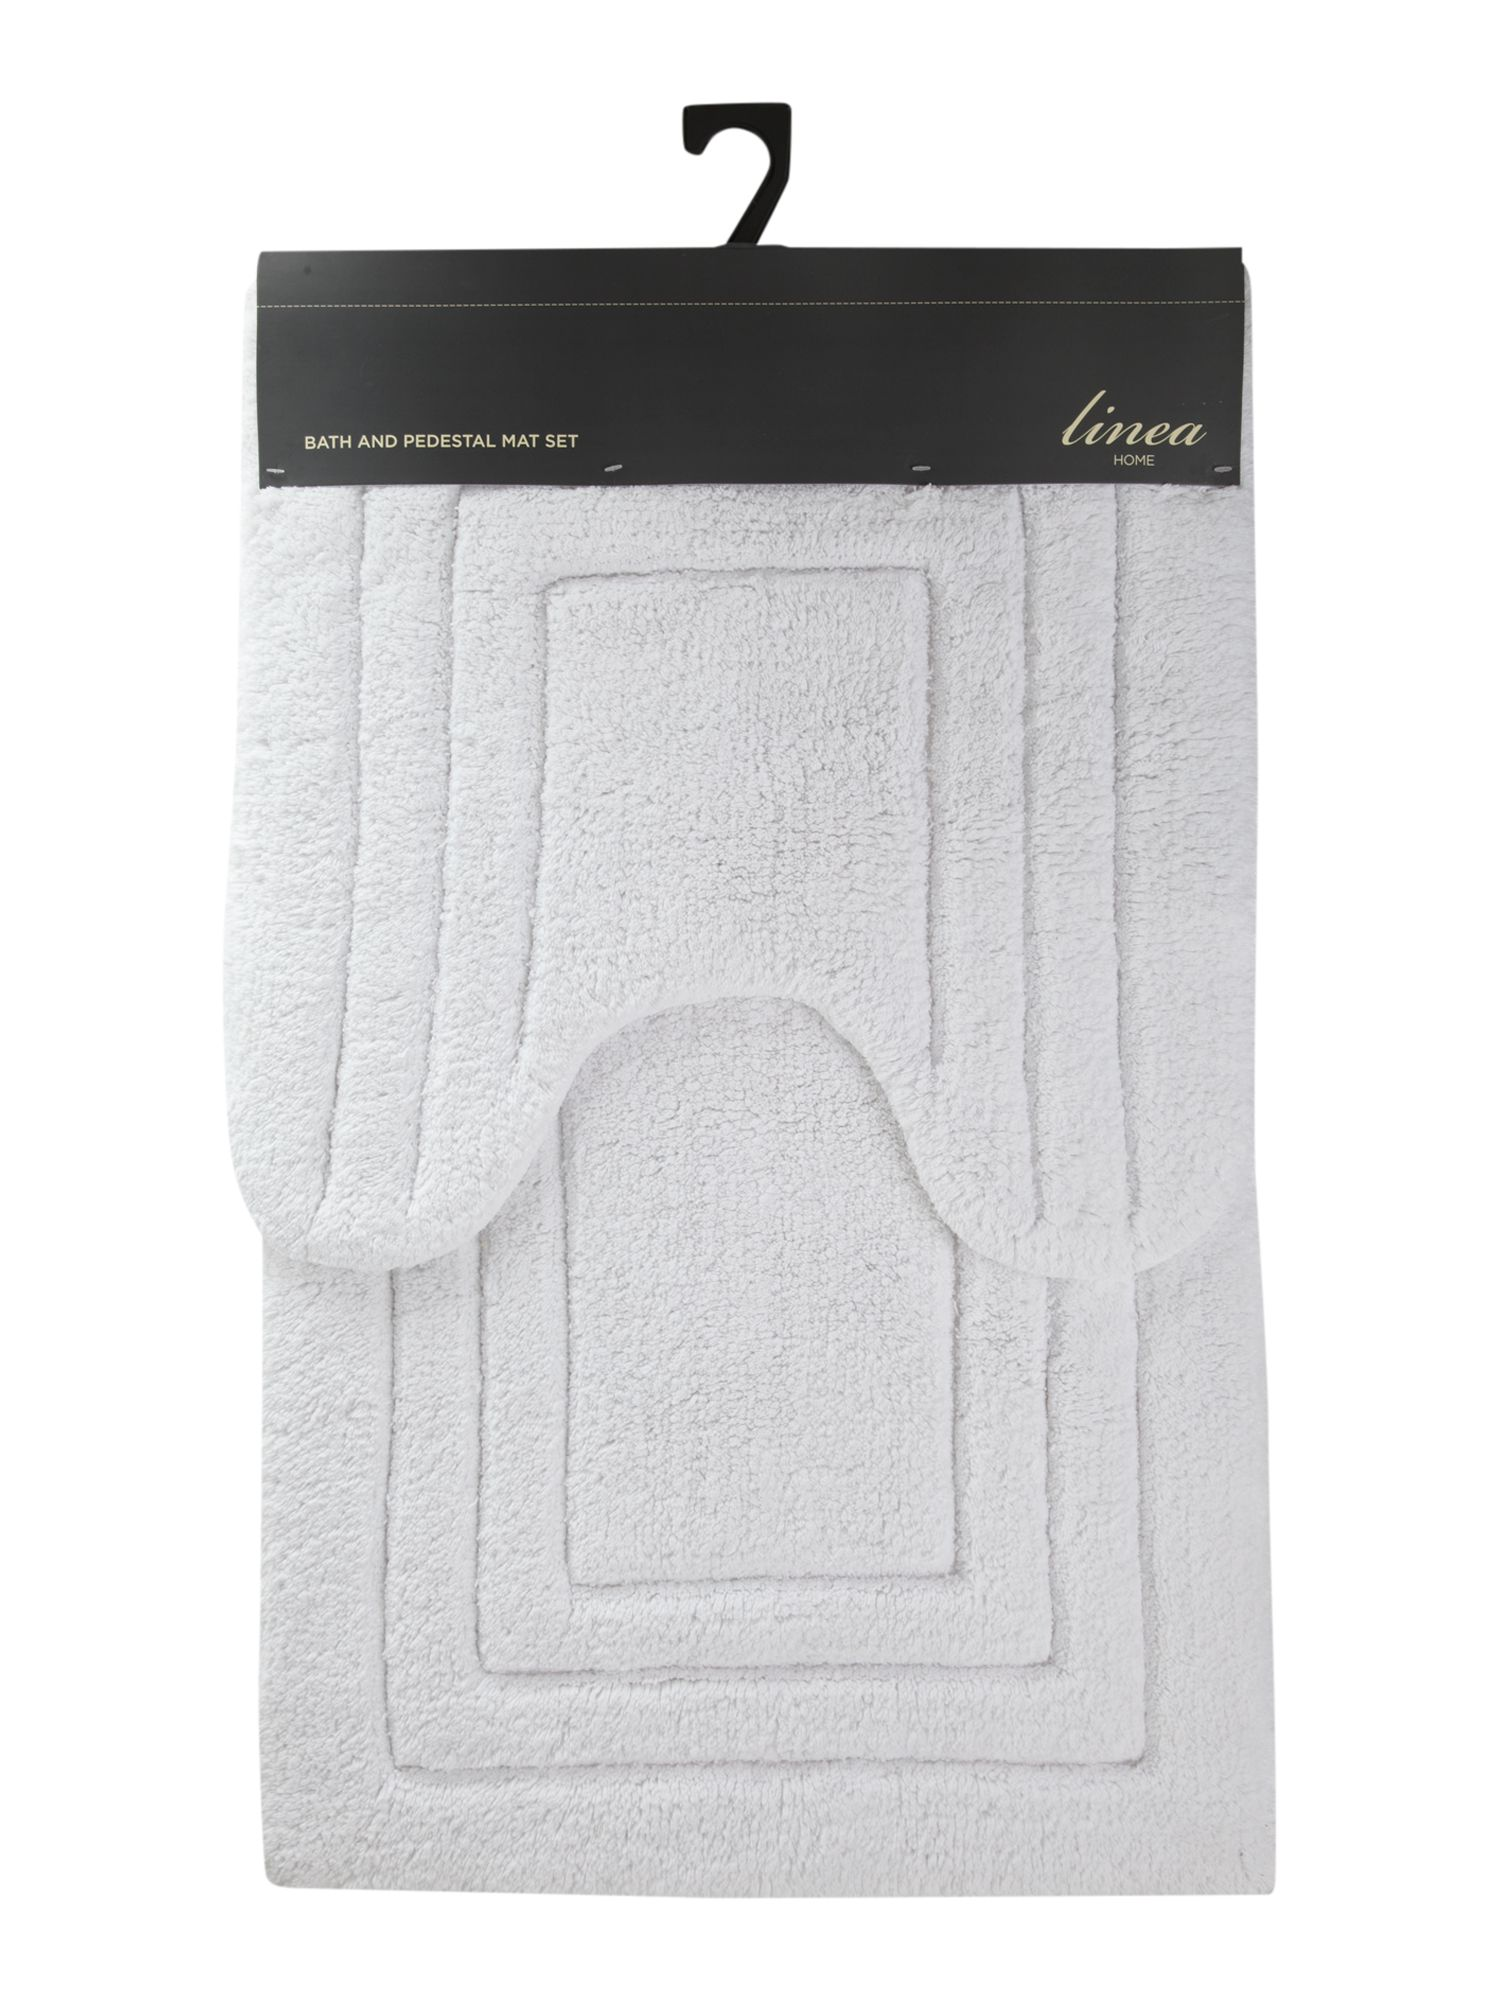 Bath mat and pedestal mat set in white